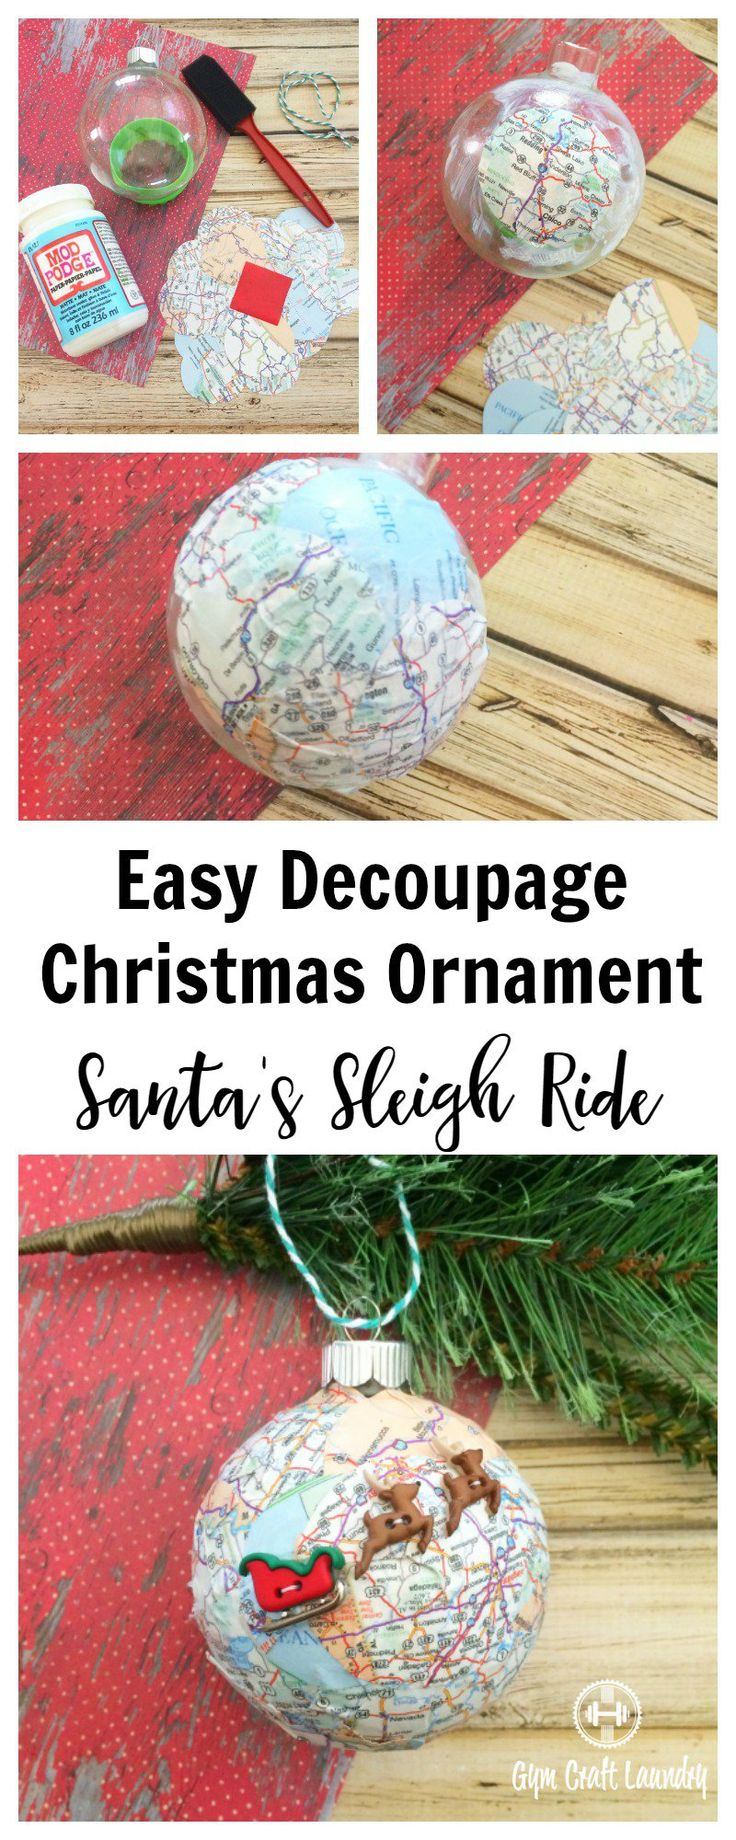 Diy christmas ornaments for newlyweds - Christmas Crafts